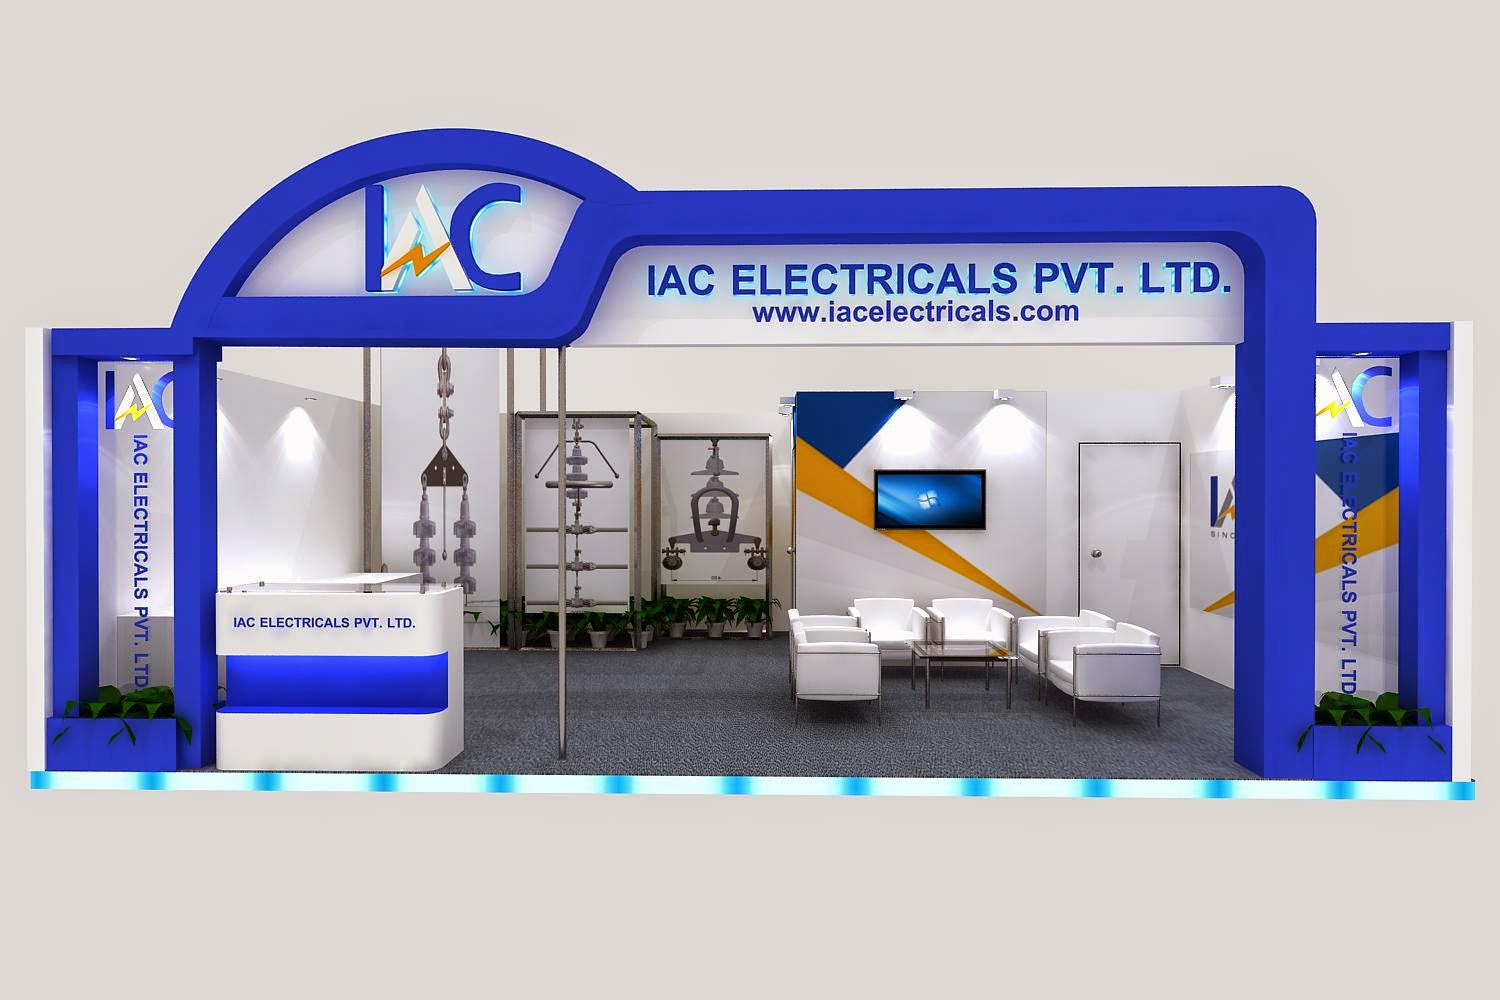 Exhibition Stall Design Images : Booth design exhibition stall designer stand